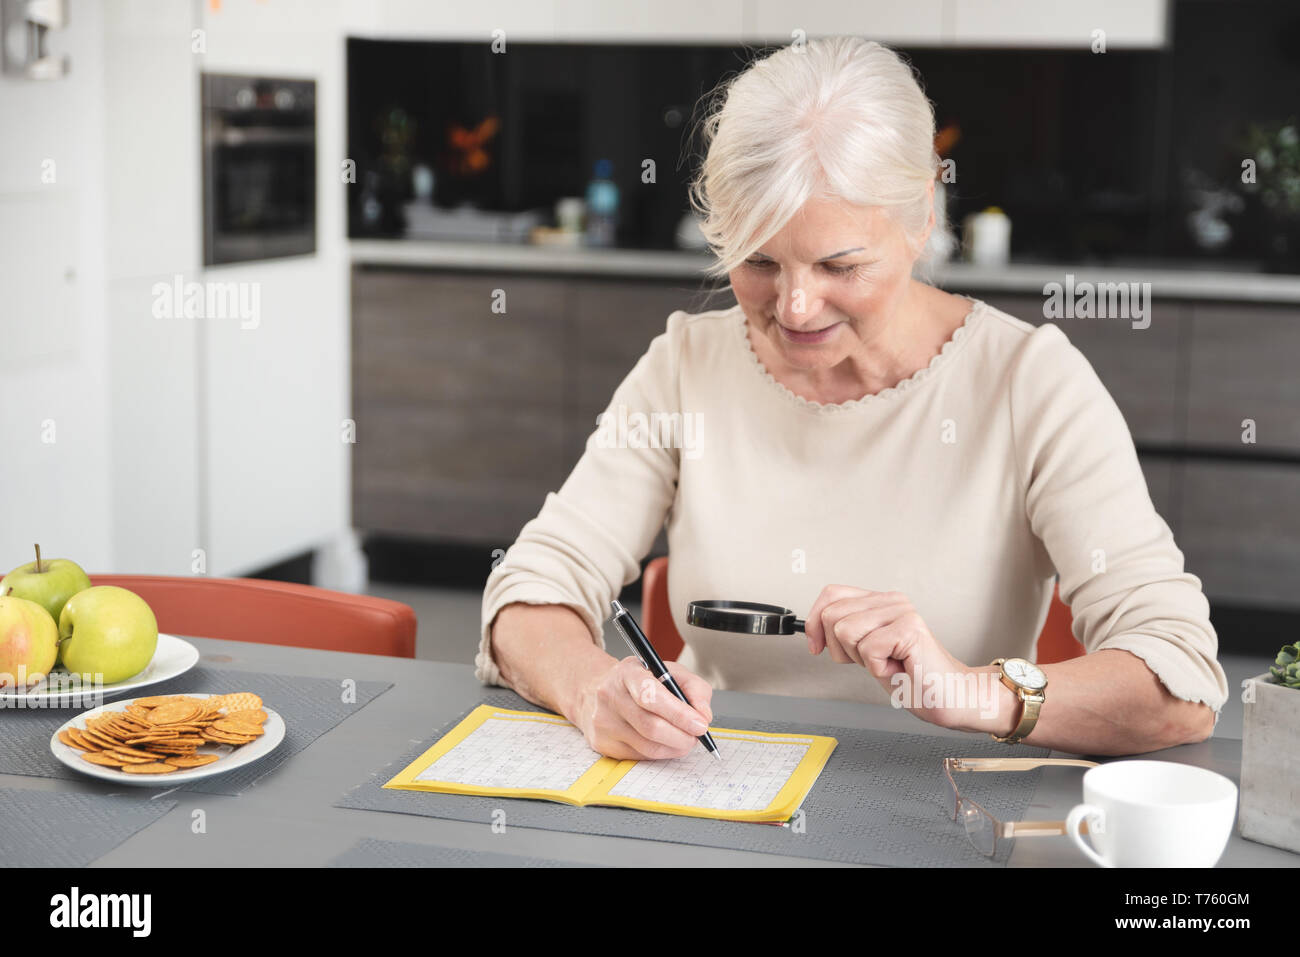 Woman Crossword Puzzle High Resolution Stock Photography And Images Alamy